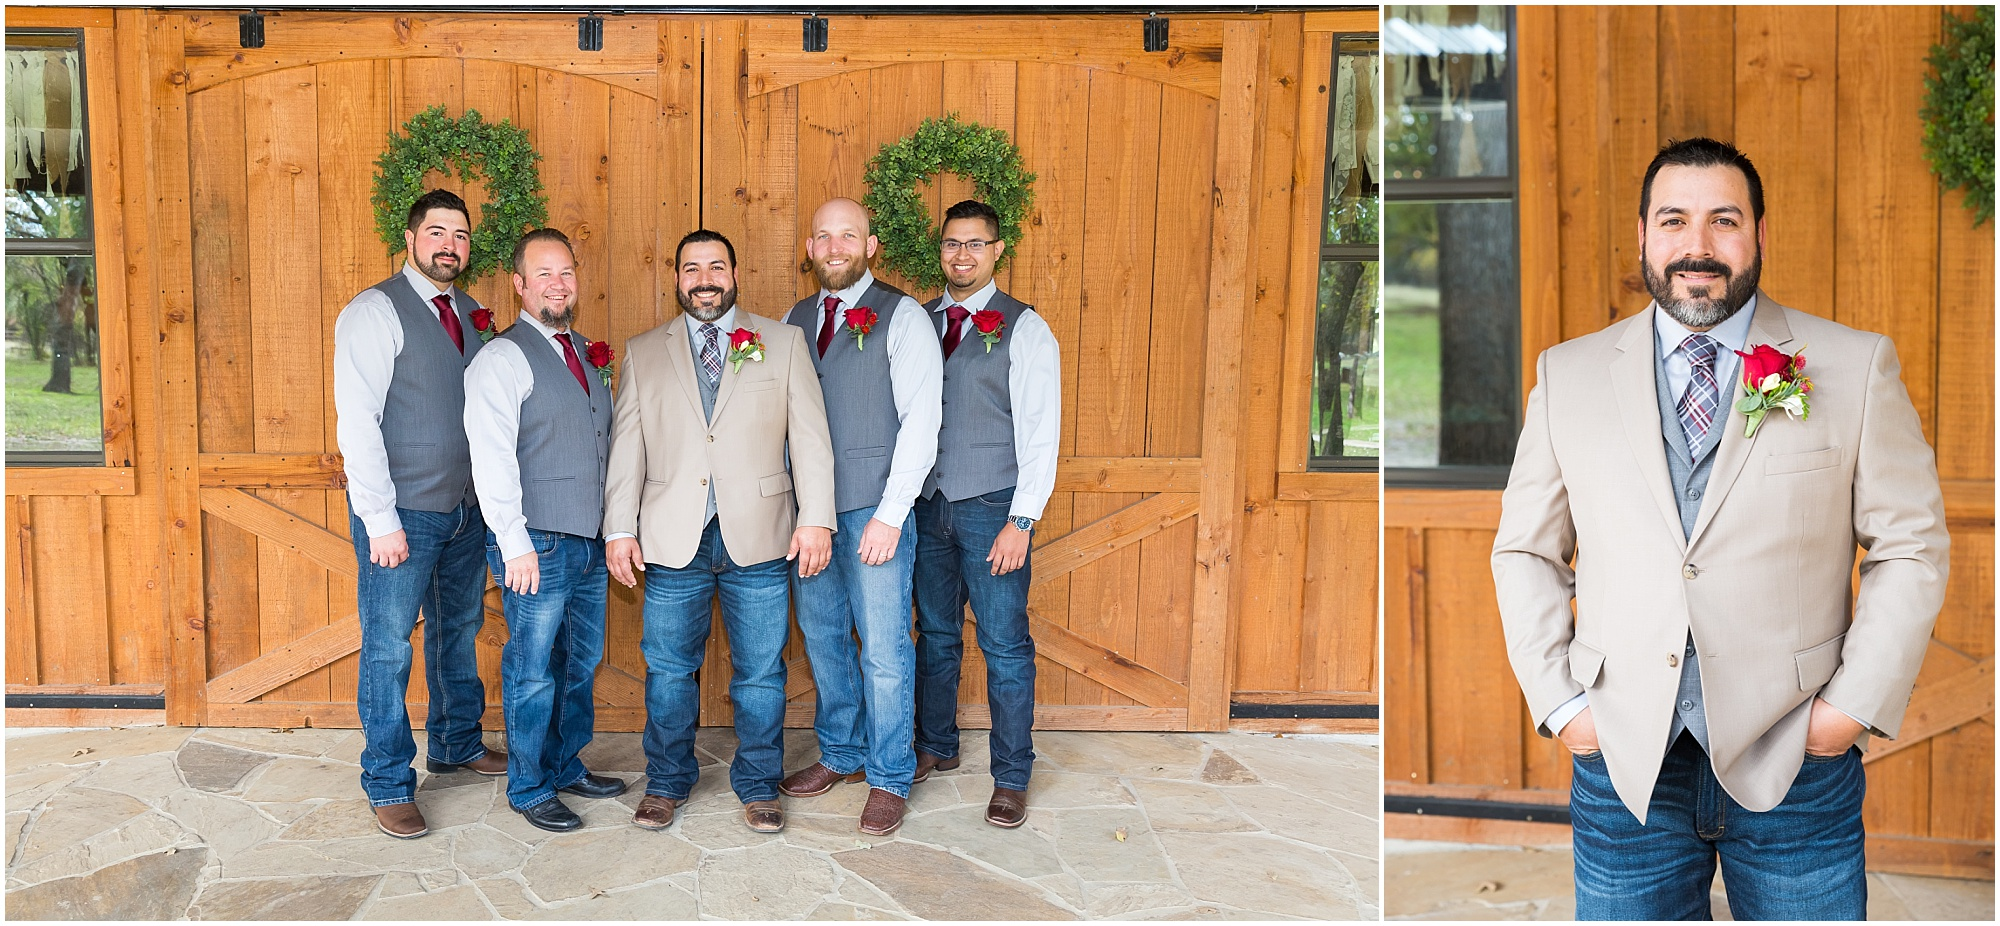 Groomsmen in gray vests, jeans and boots - Dove Creek Ranch in Dublin, Texas - Jason & Melaina Photography - www.jasonandmelaina.com